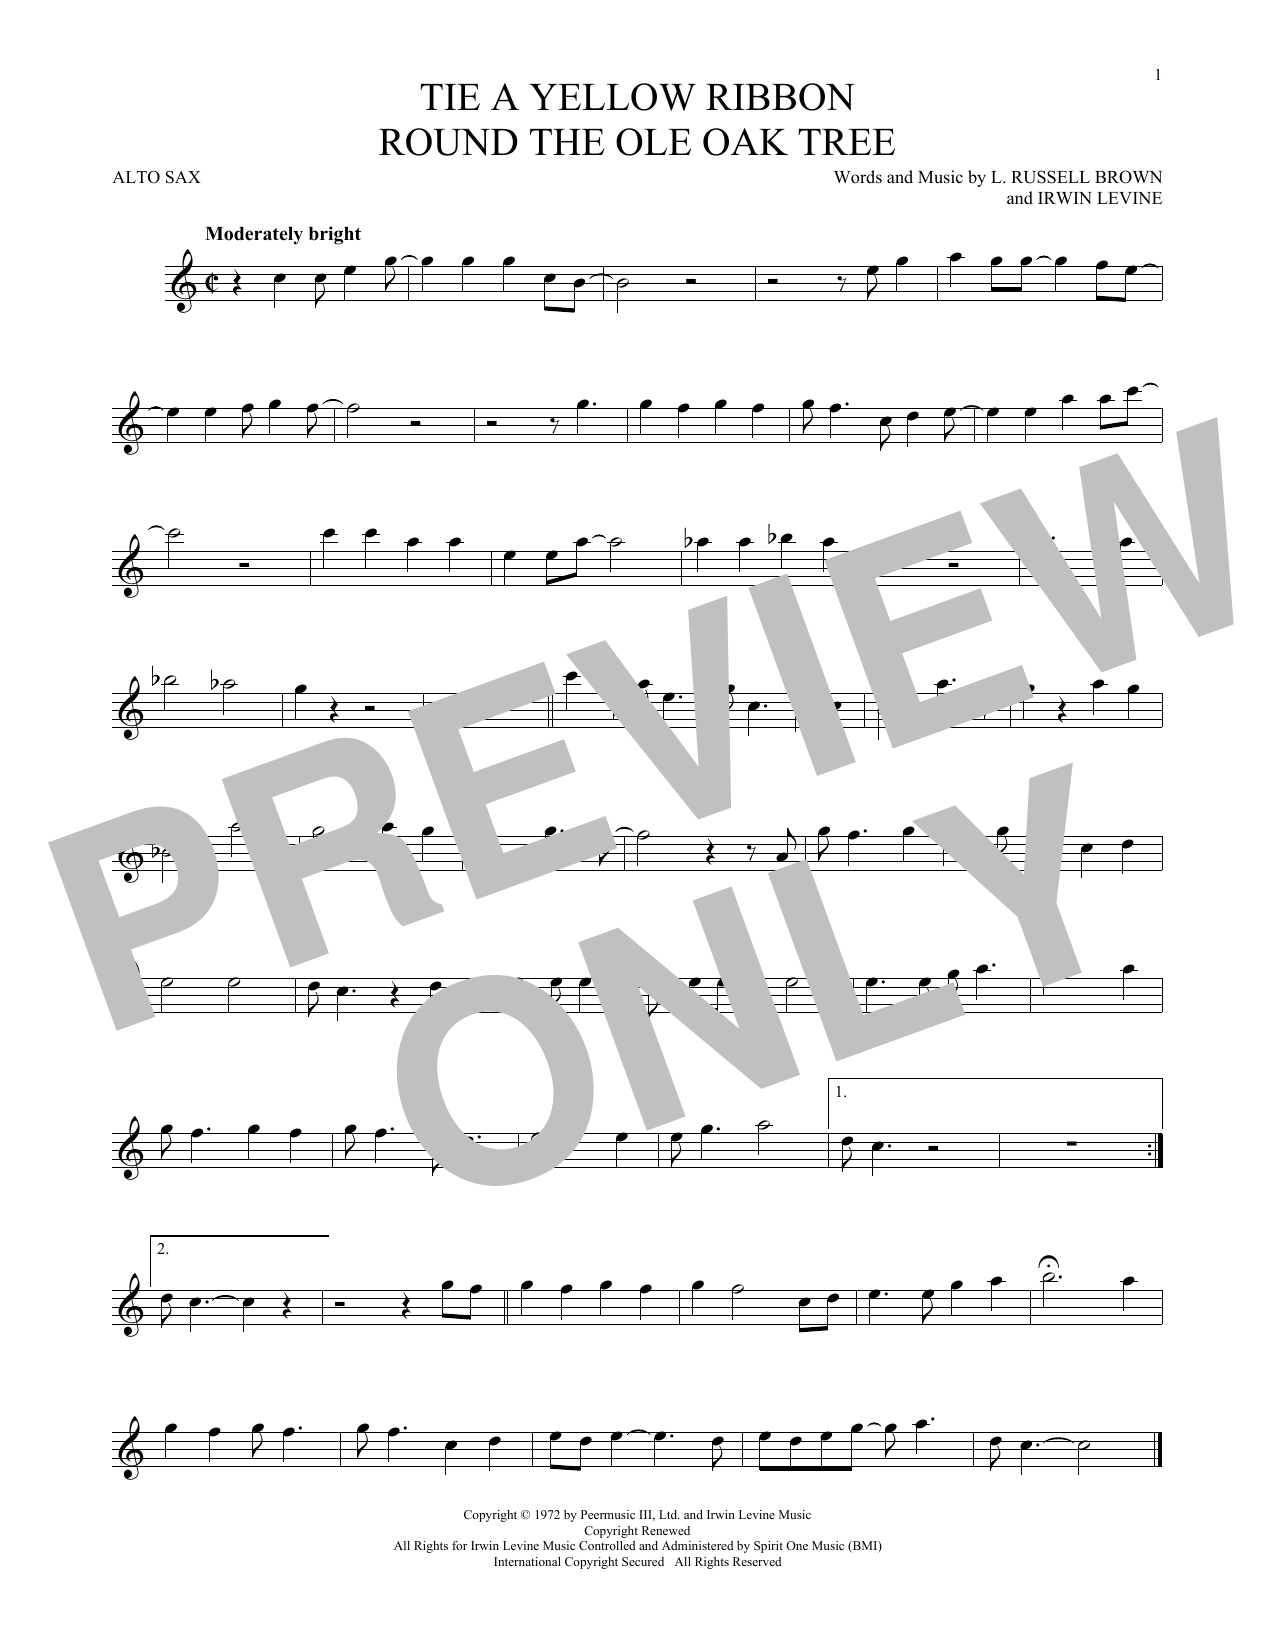 Dawn featuring Tony Orlando Tie A Yellow Ribbon Round The Ole Oak Tree sheet music notes and chords. Download Printable PDF.